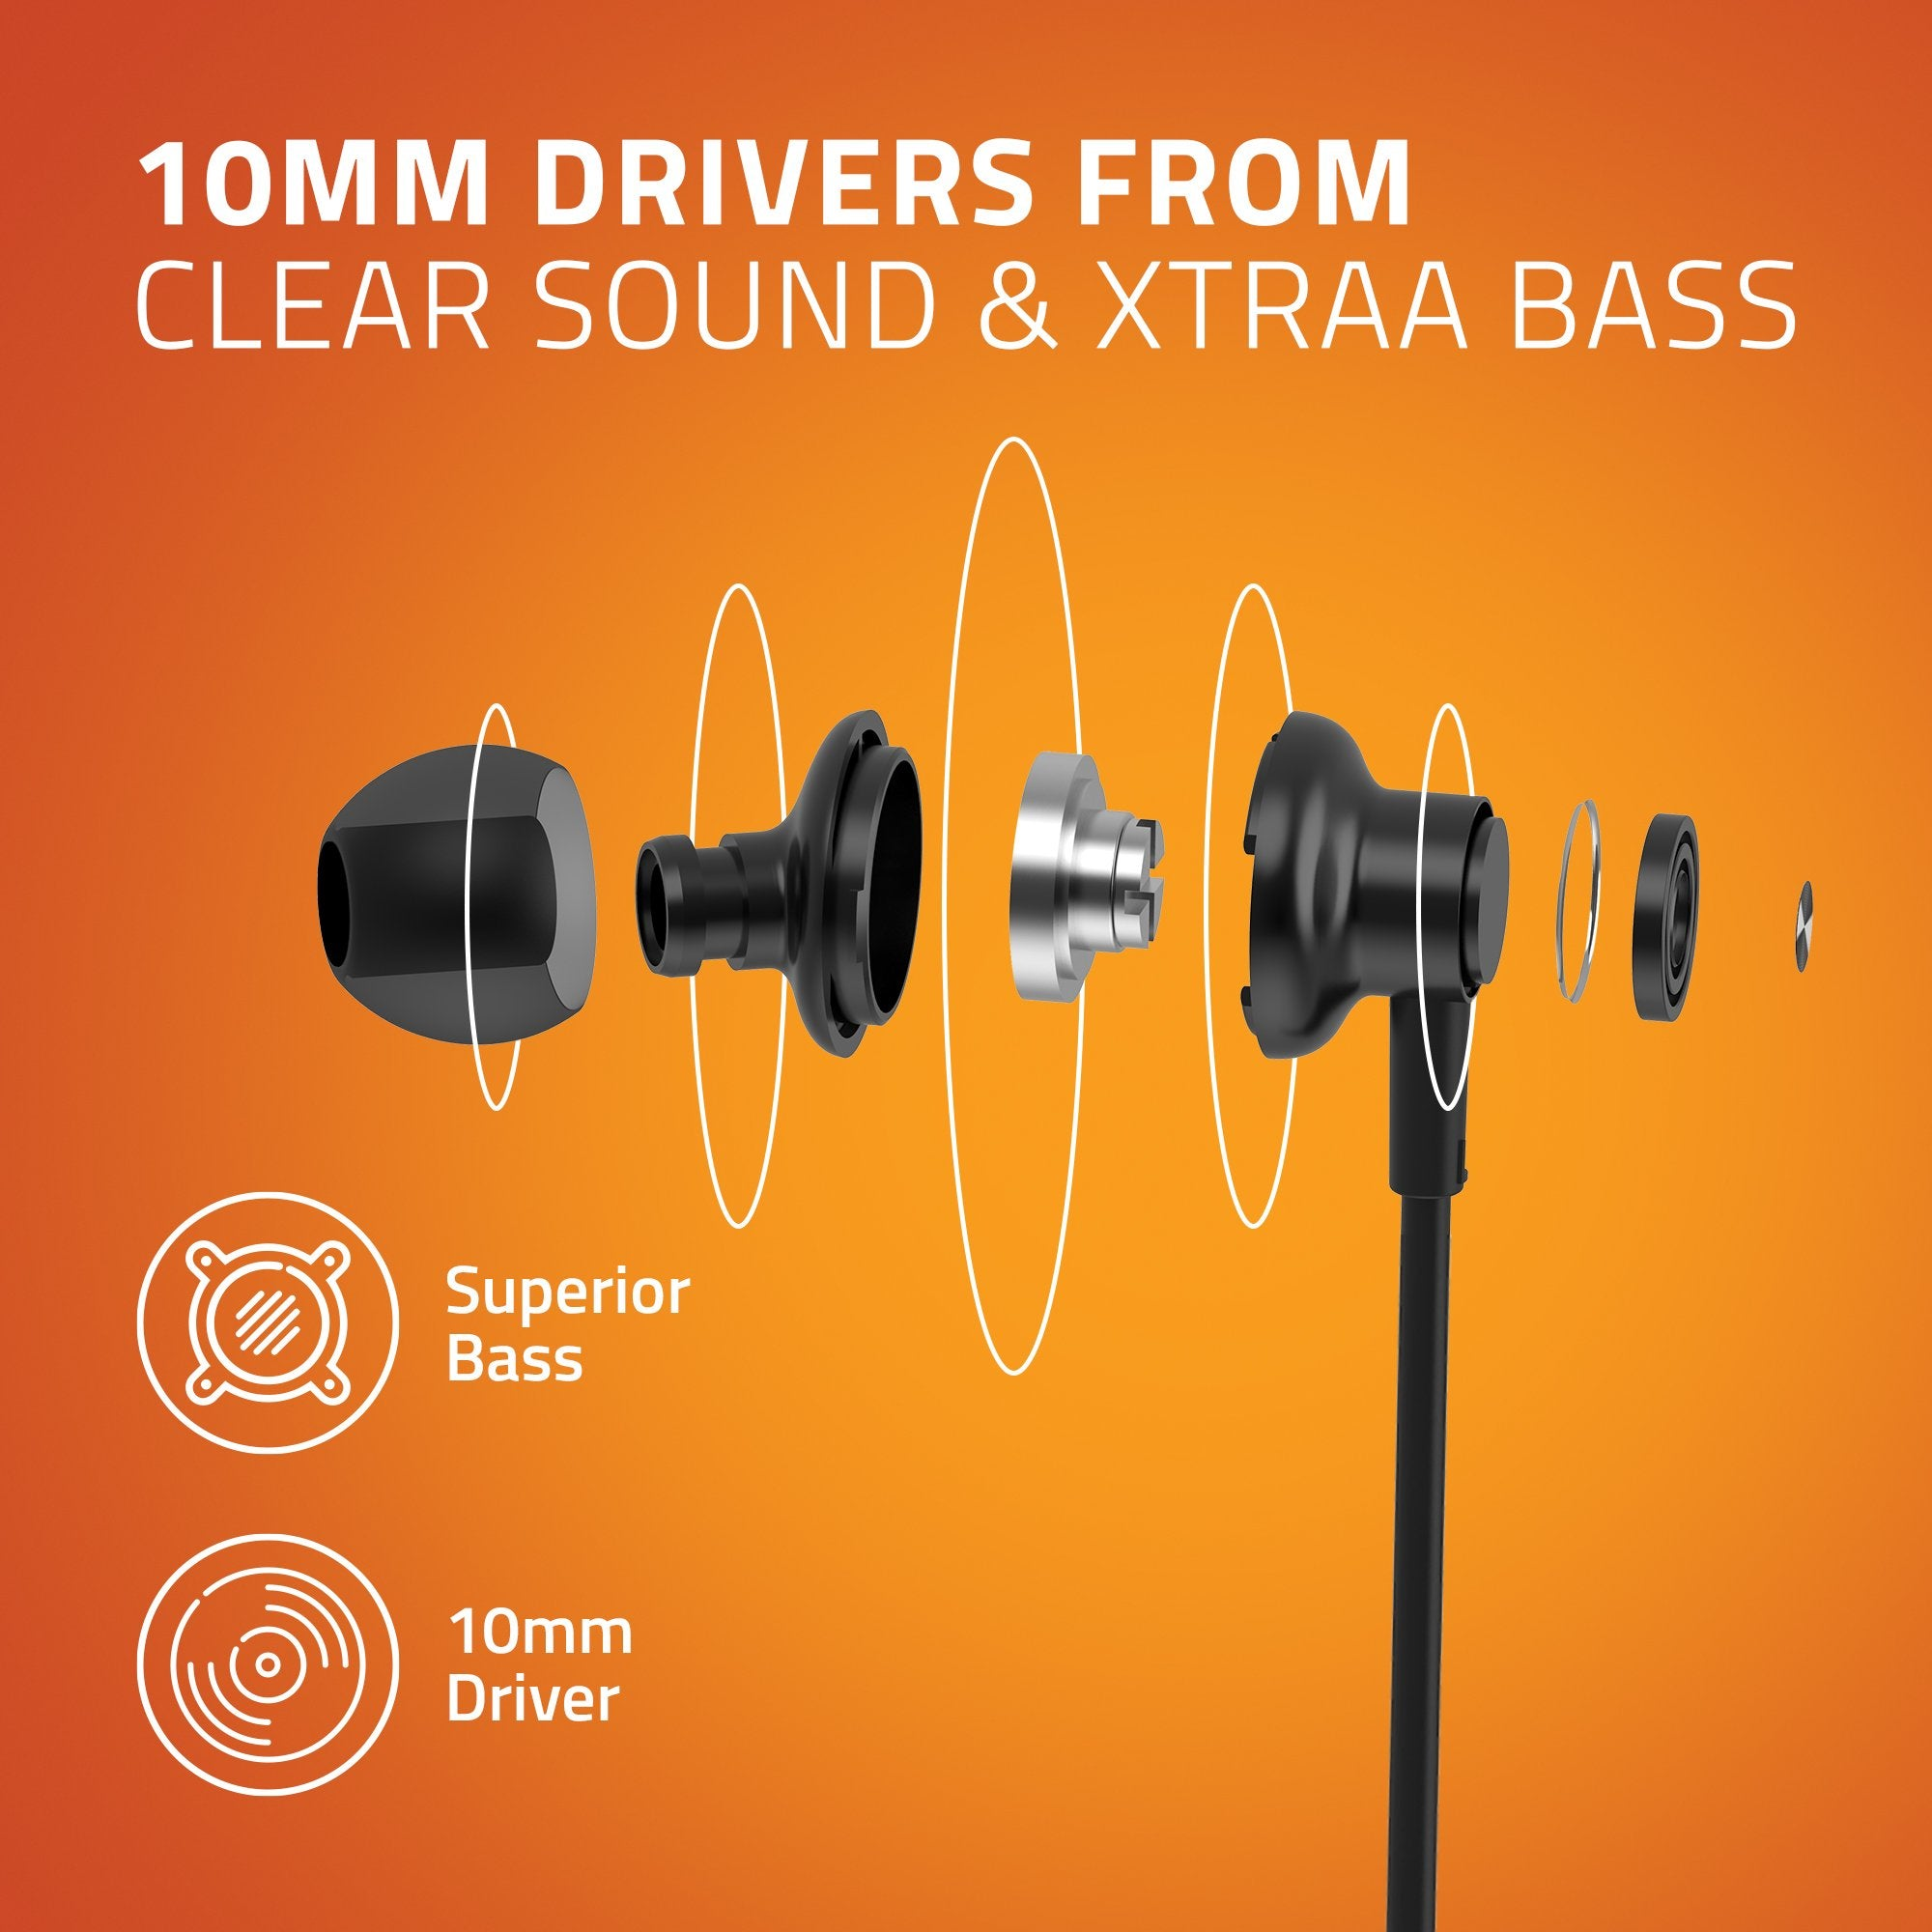 Artis E600M Earphones With Mic - Clear Sound & Xtra Bass